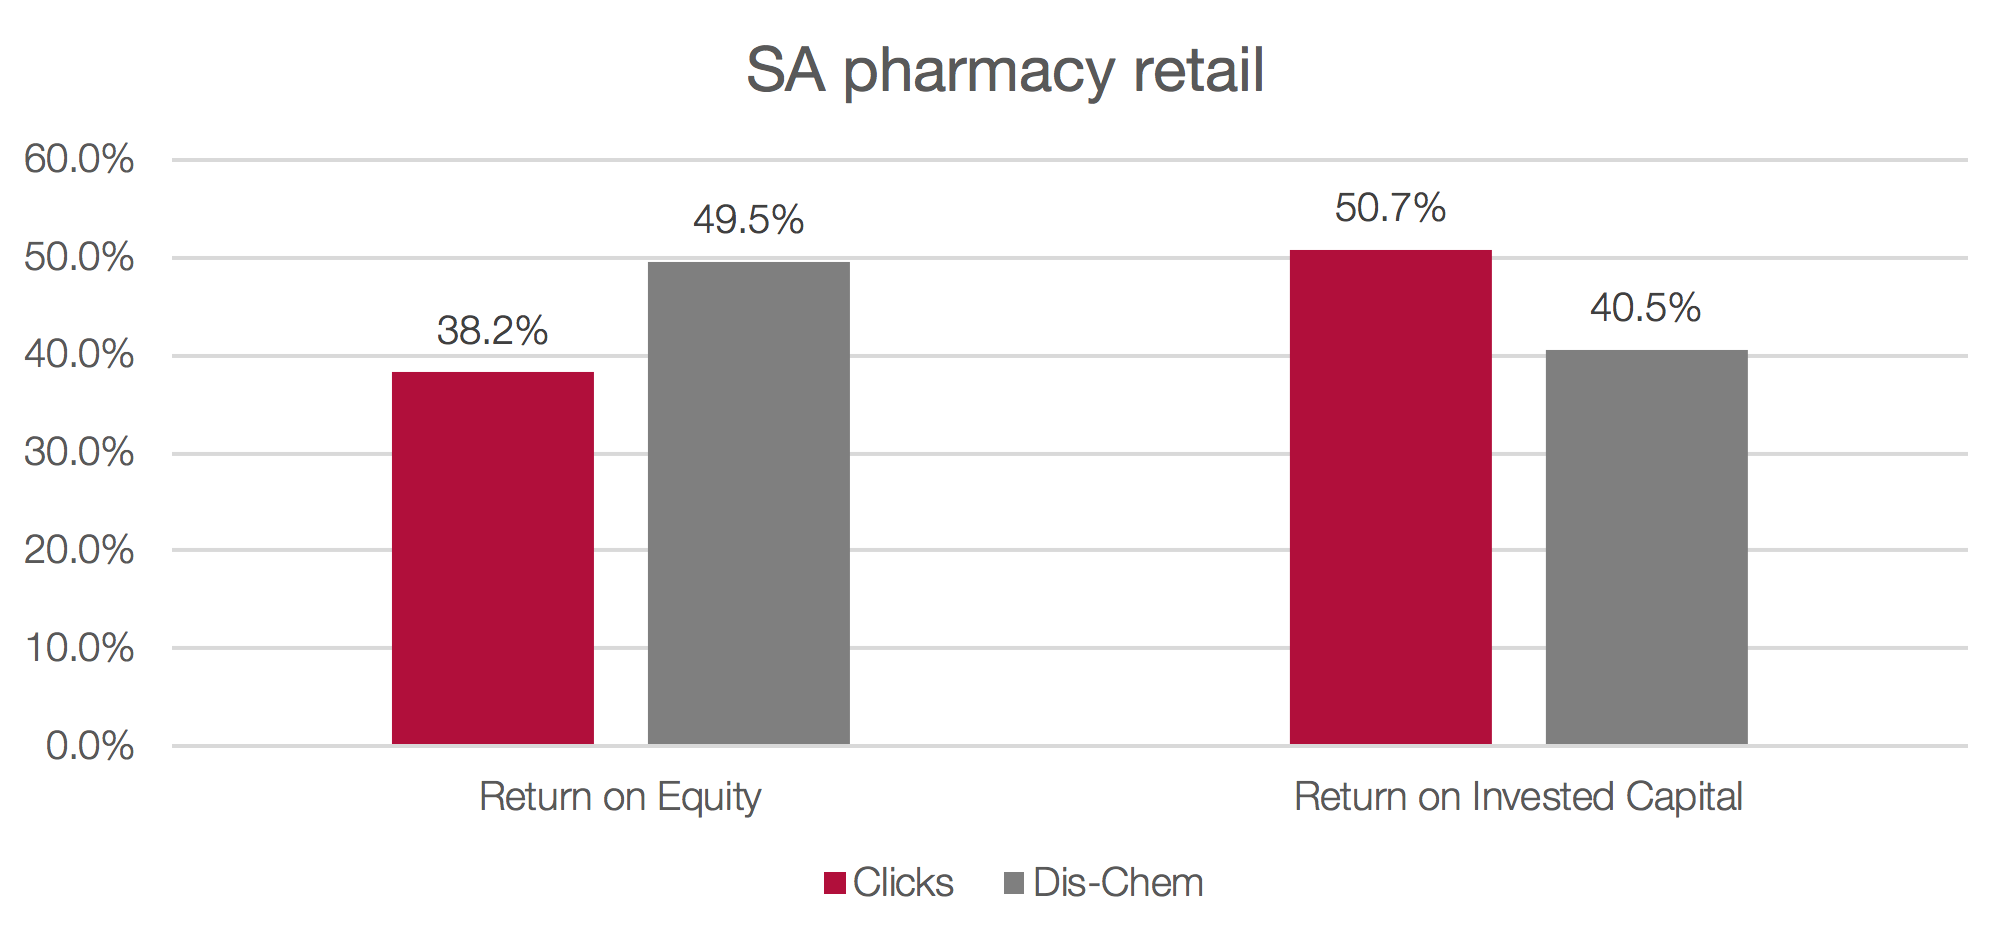 SA Pharmacy retail